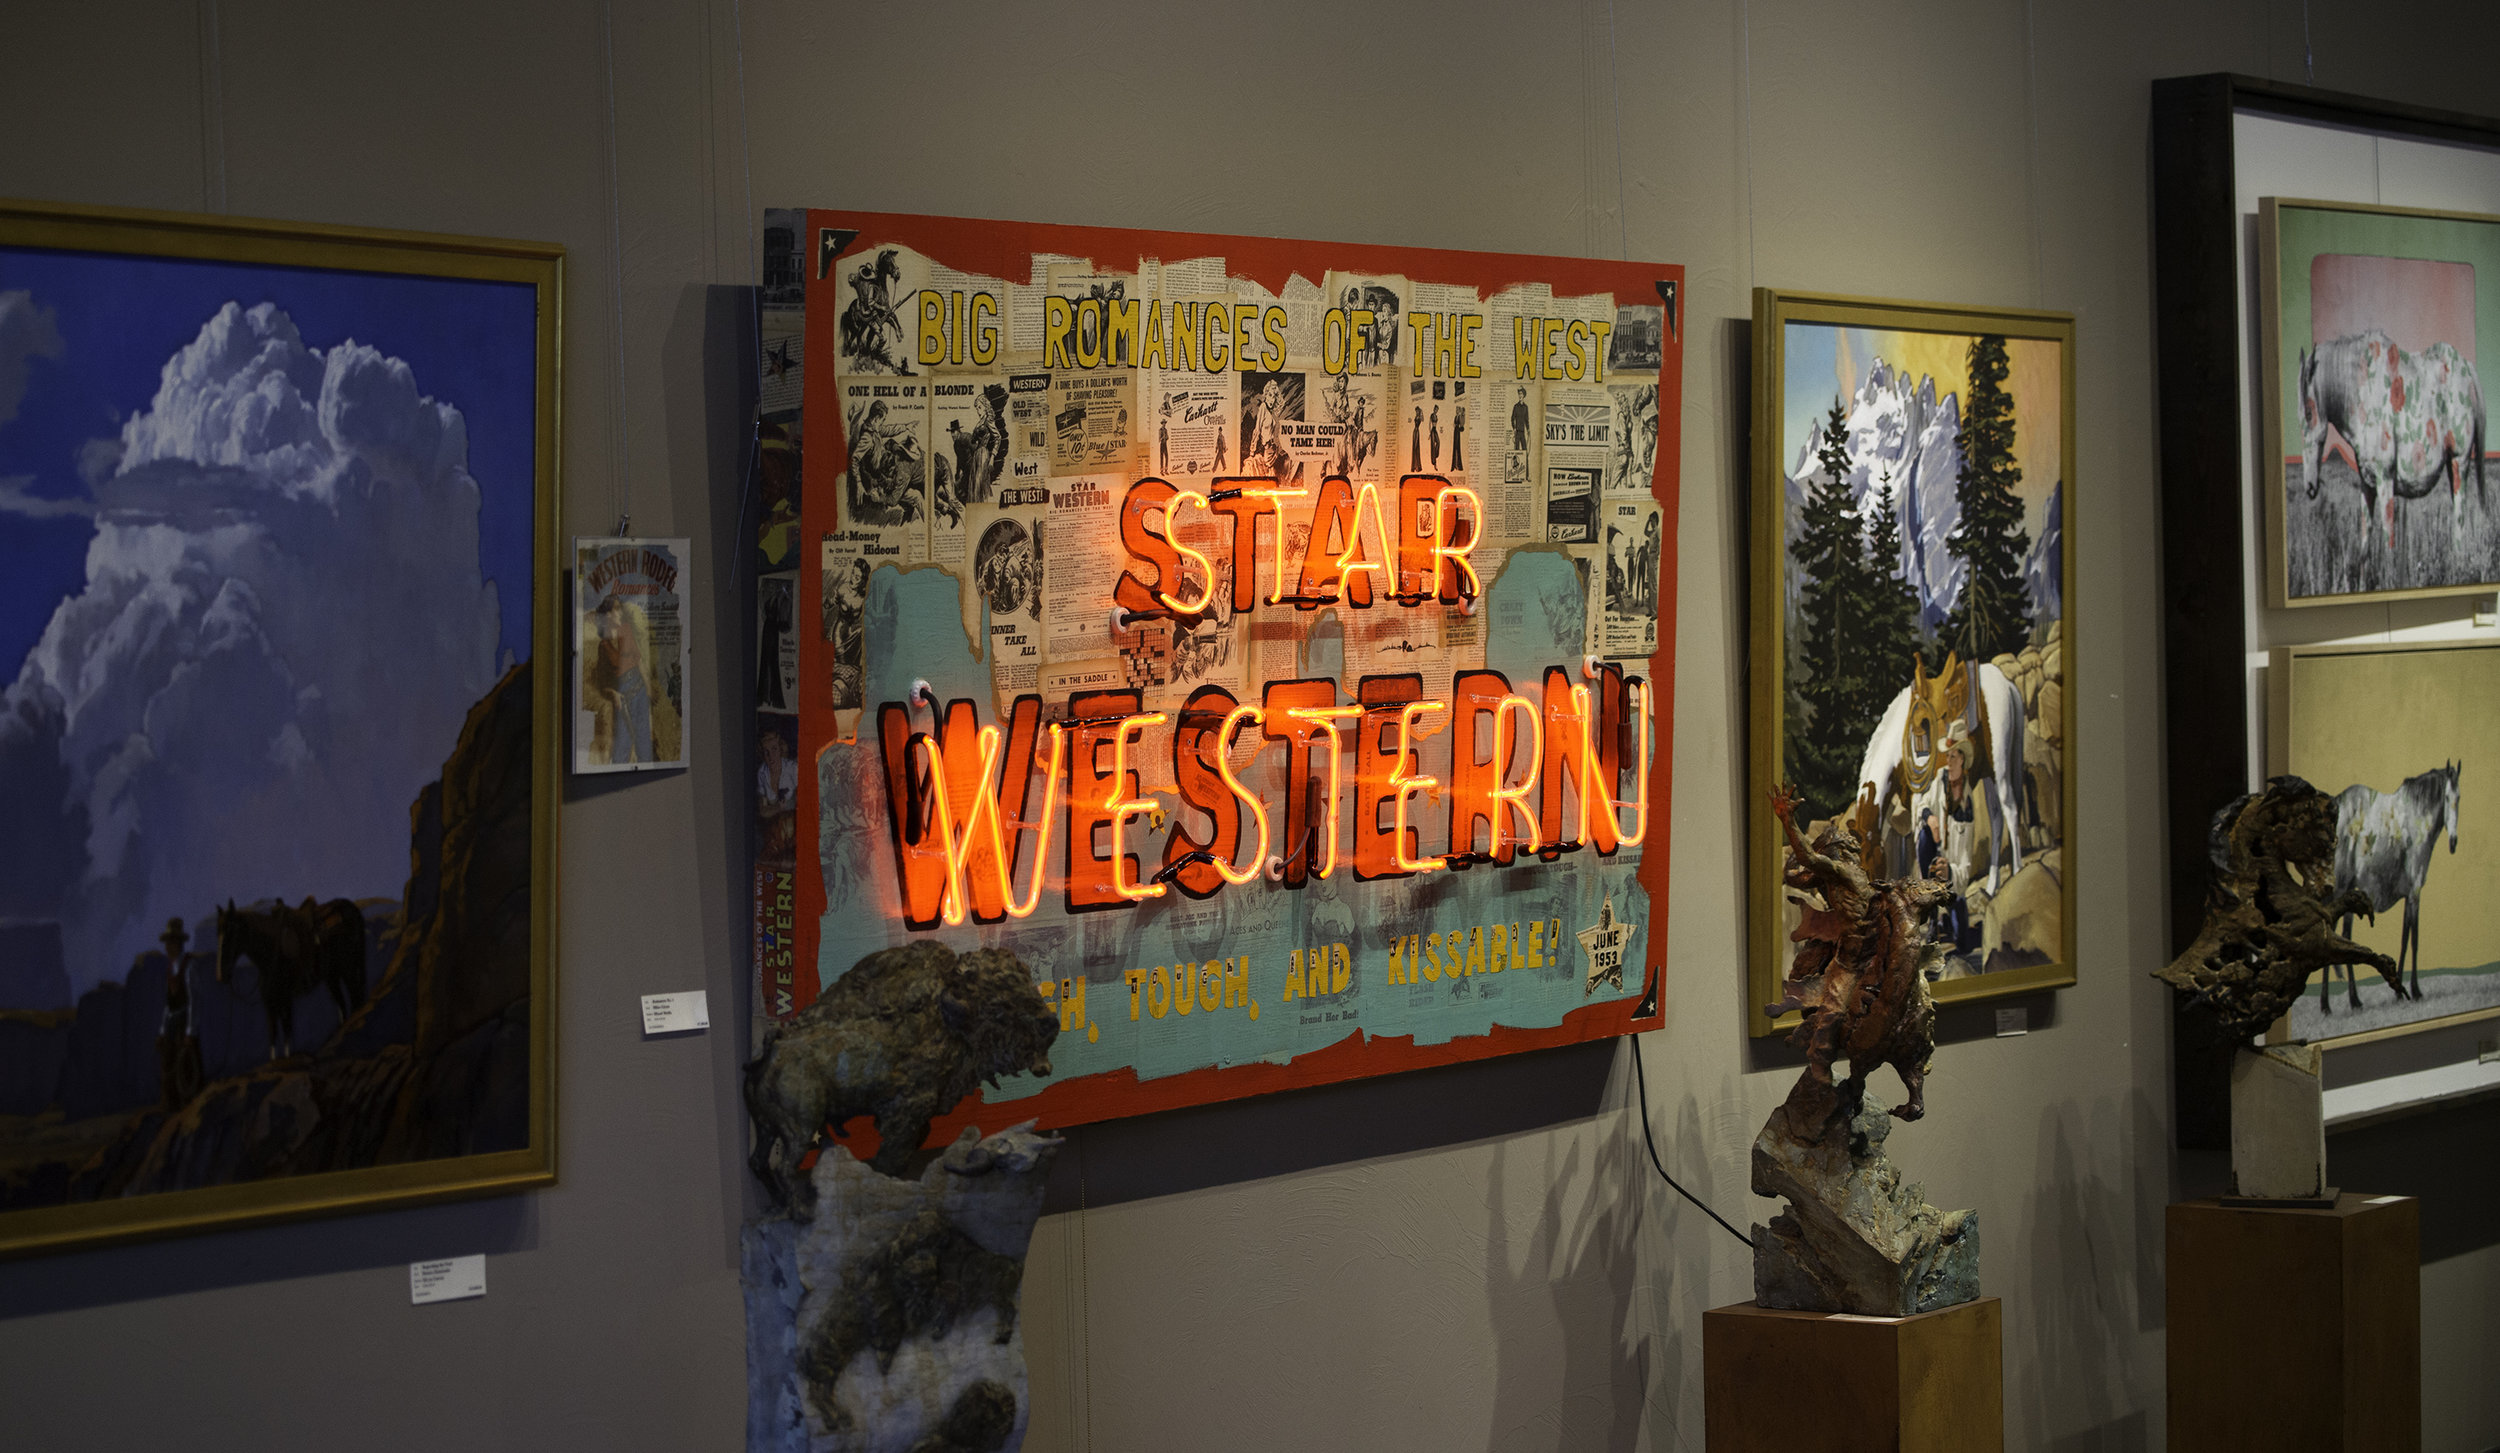 Star Western No. 1 - shown displayed in Creighton Block Gallery in Big Sky, Montana